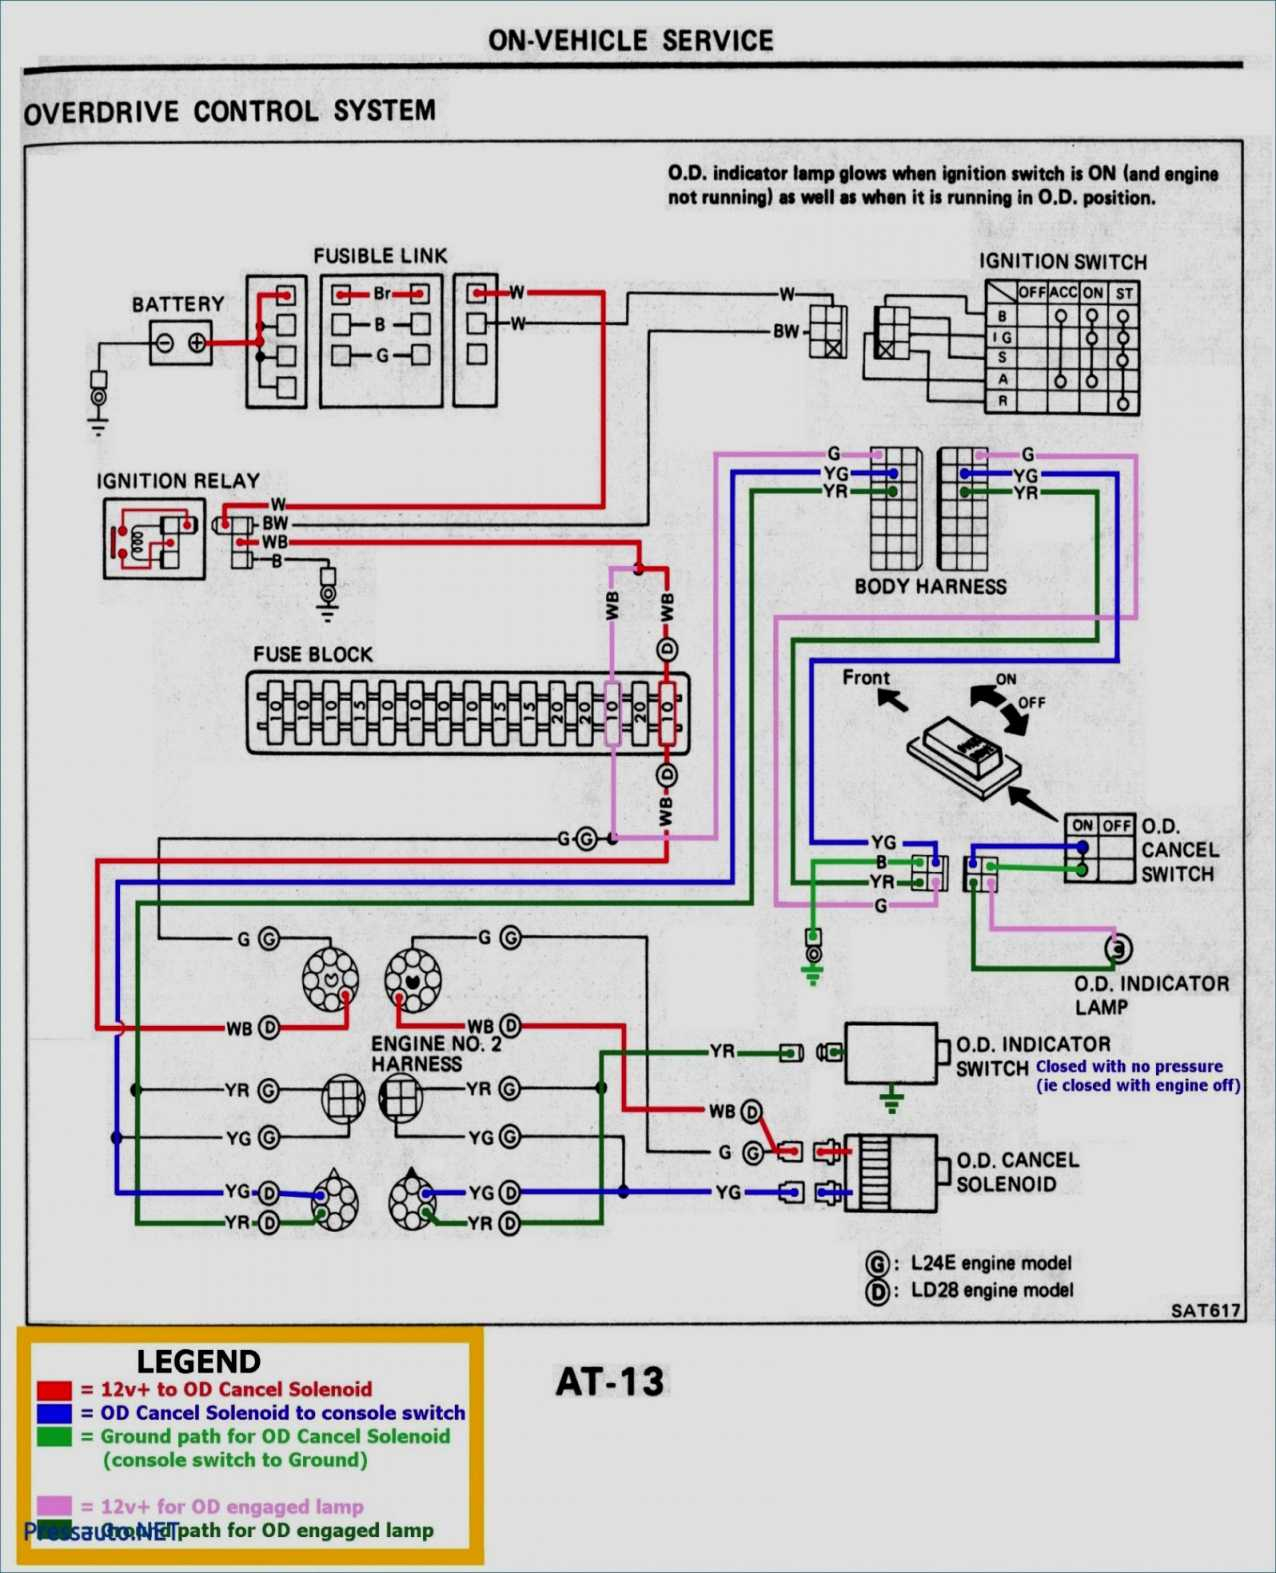 Caravan Wiring Diagram Australia - Wiring Diagrams - Trailer Hitch Wiring Diagram